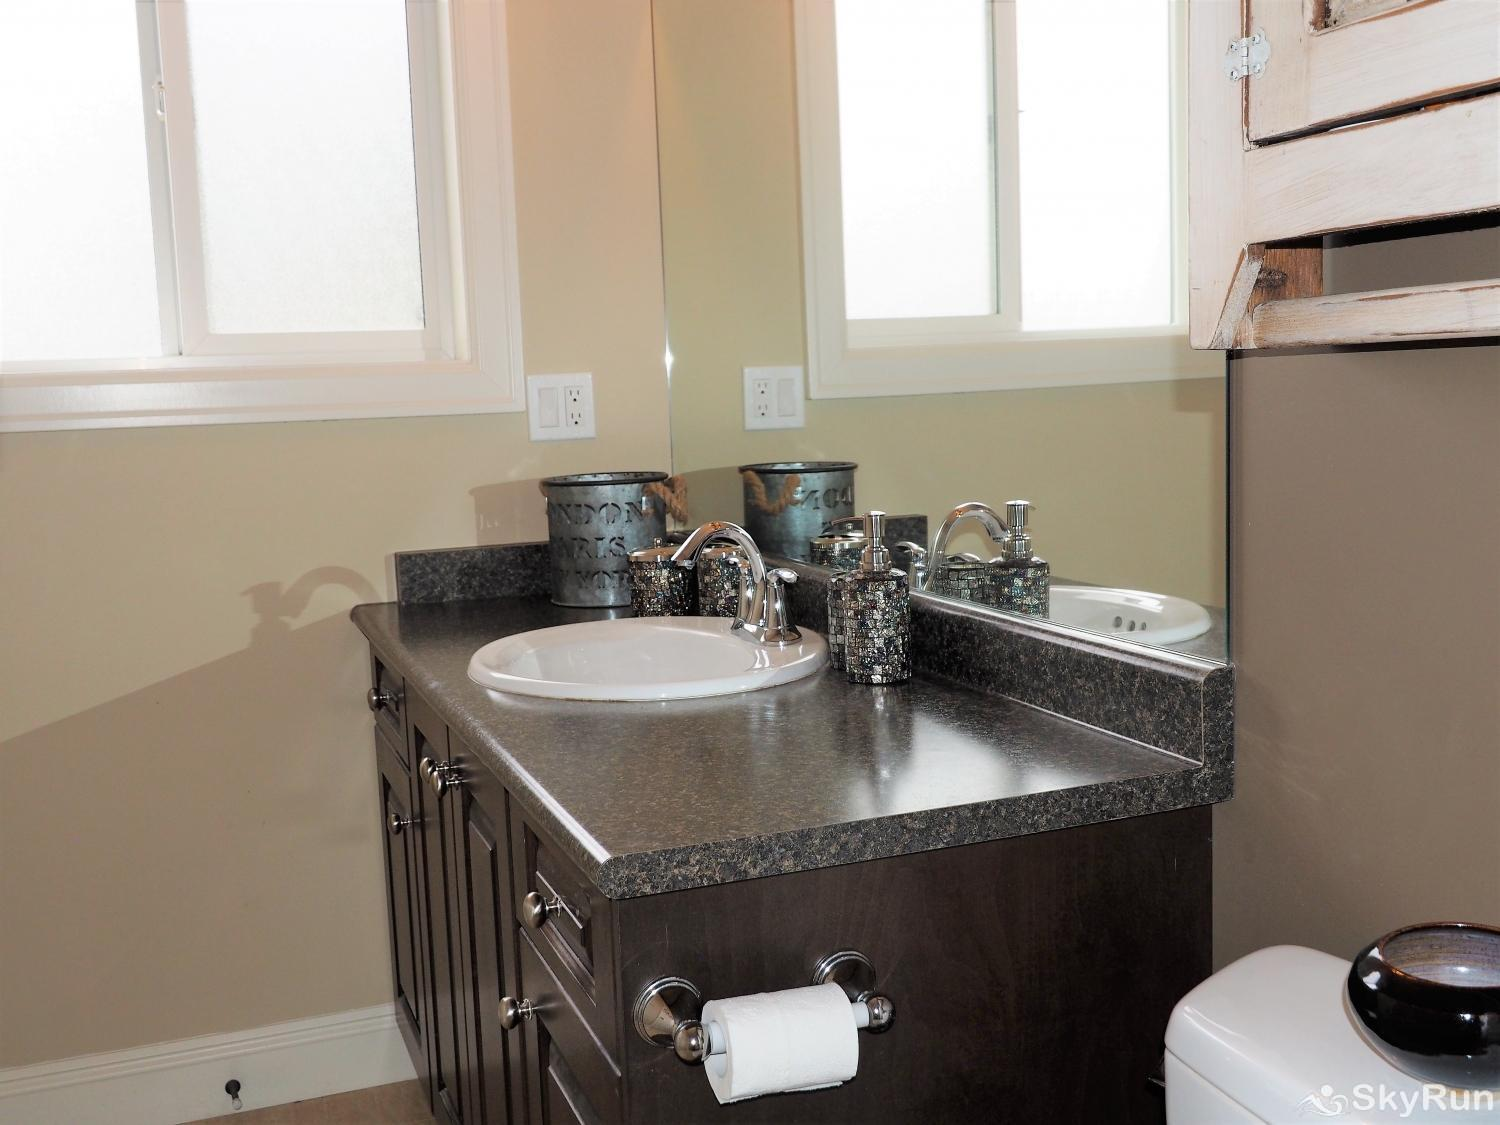 Old Summerland 4 bedroom townhouse Bright and roomy ensuite for the master bedroom